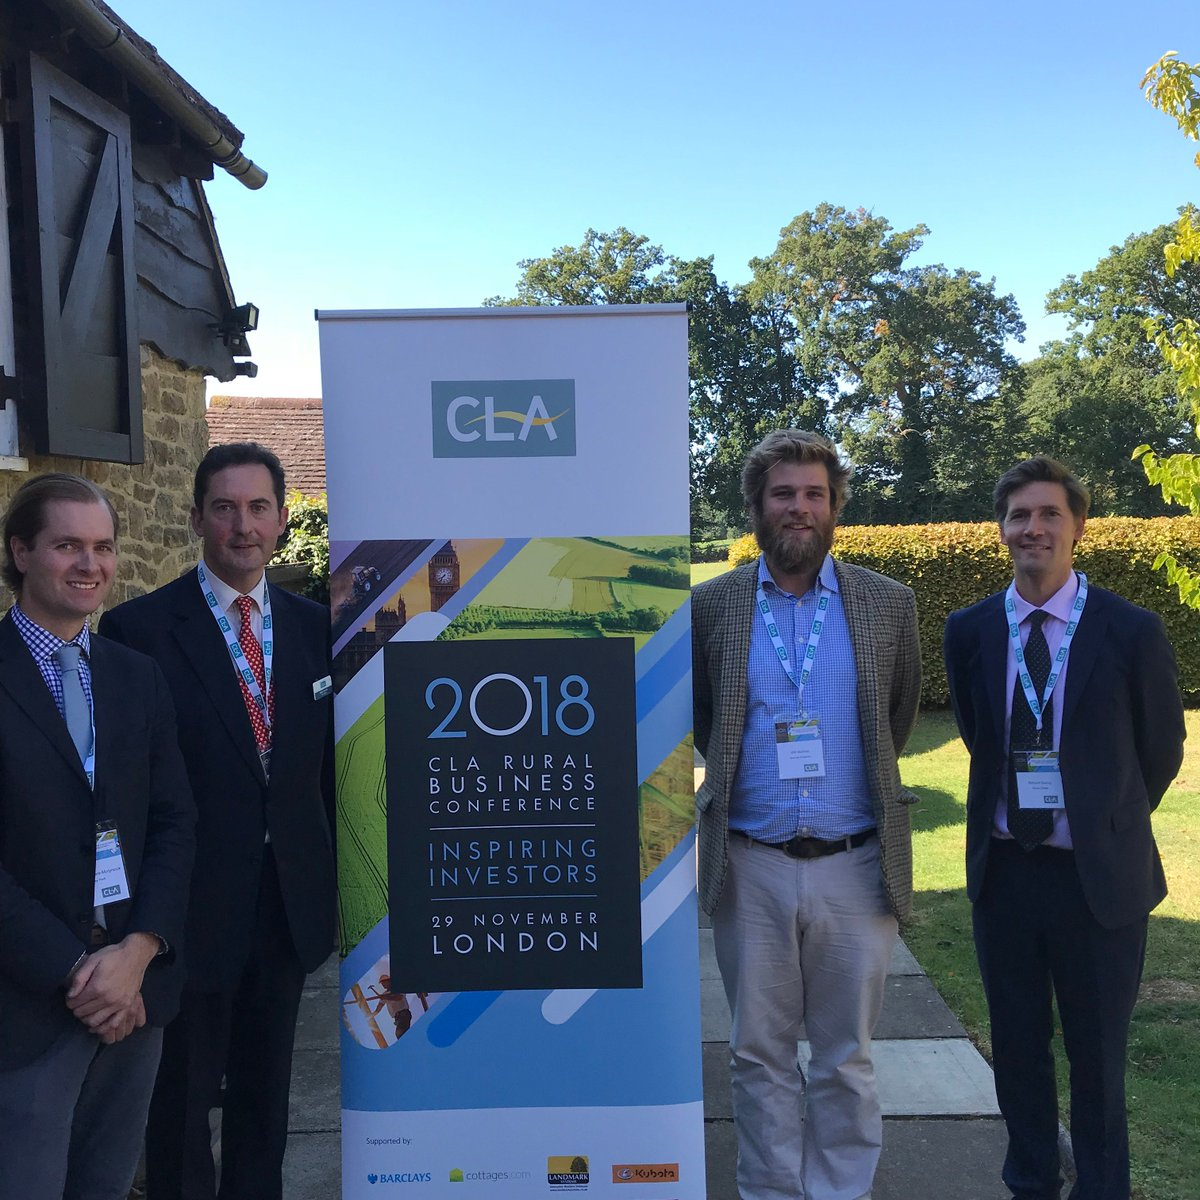 RT @BuyHedgesOnline We had a GREAT day out last week as a keynote speaker at the Rural Business Conference @LoseleyPark talking about our family business. Delighted to have spoken and hope it was useful to the @CLASouthEast members. #inspiringinvestors #ruralbusiness @robinedwardscla  @CLAtweets